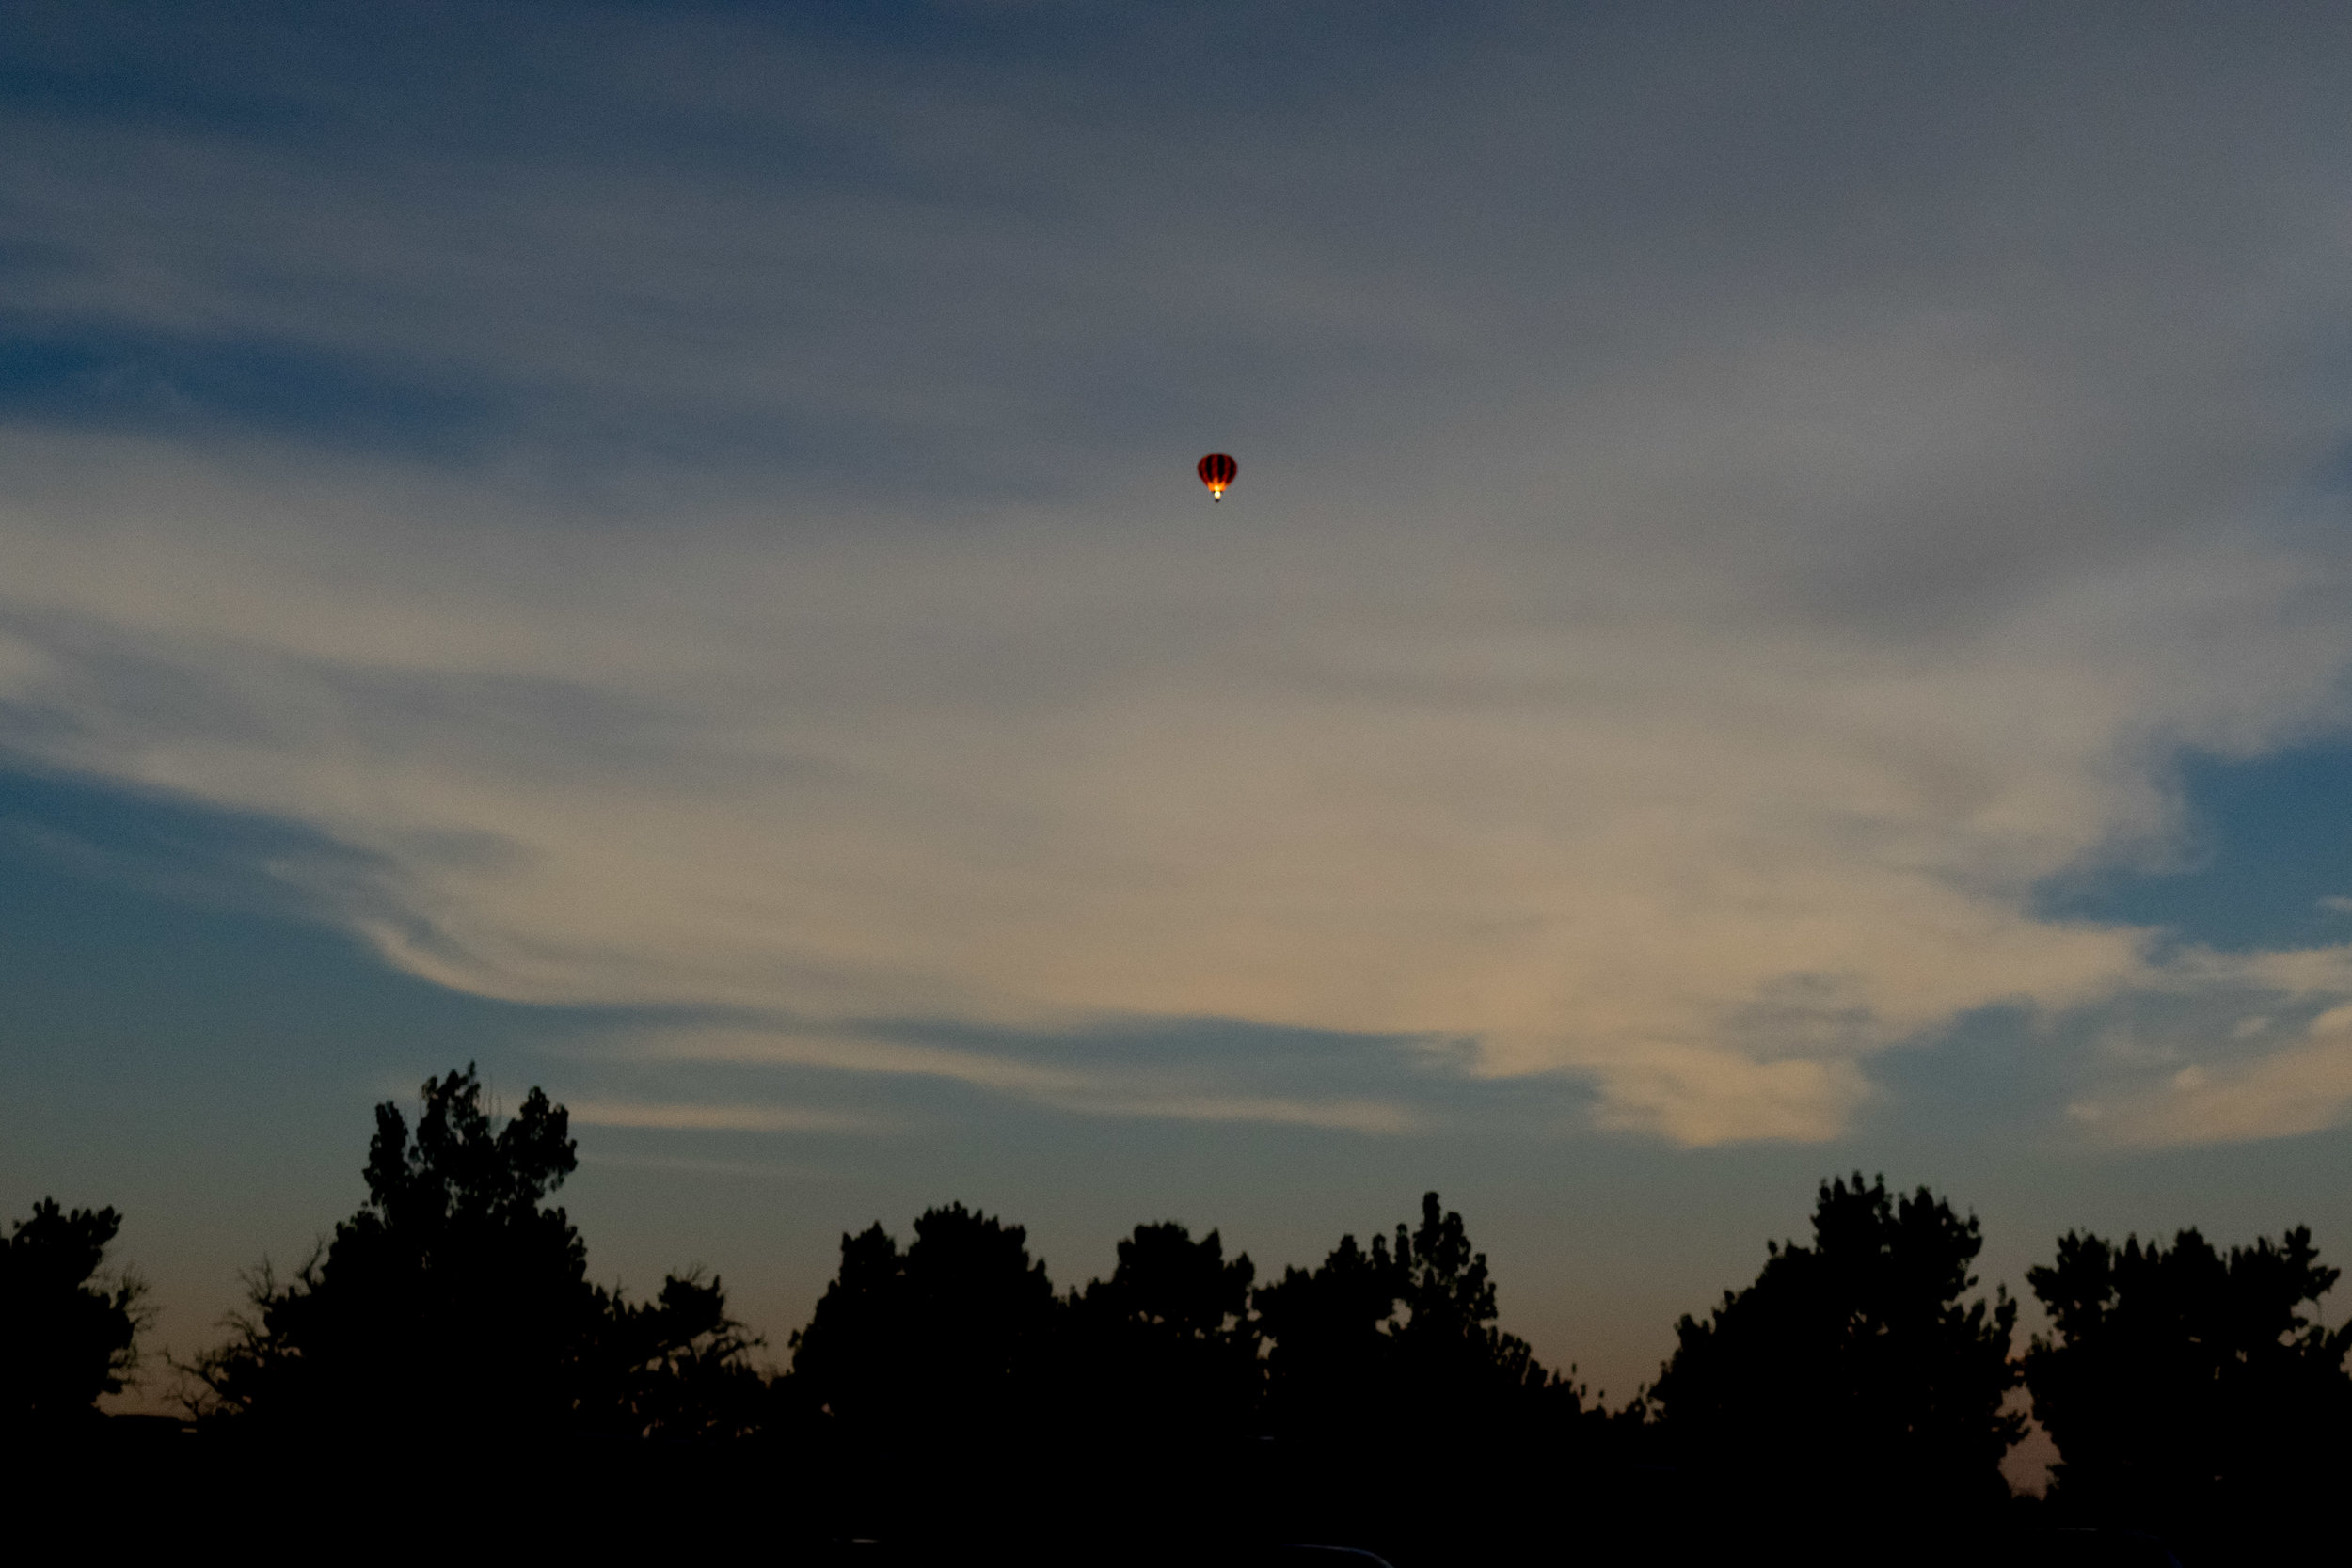 A hot air balloon behind us during totality.